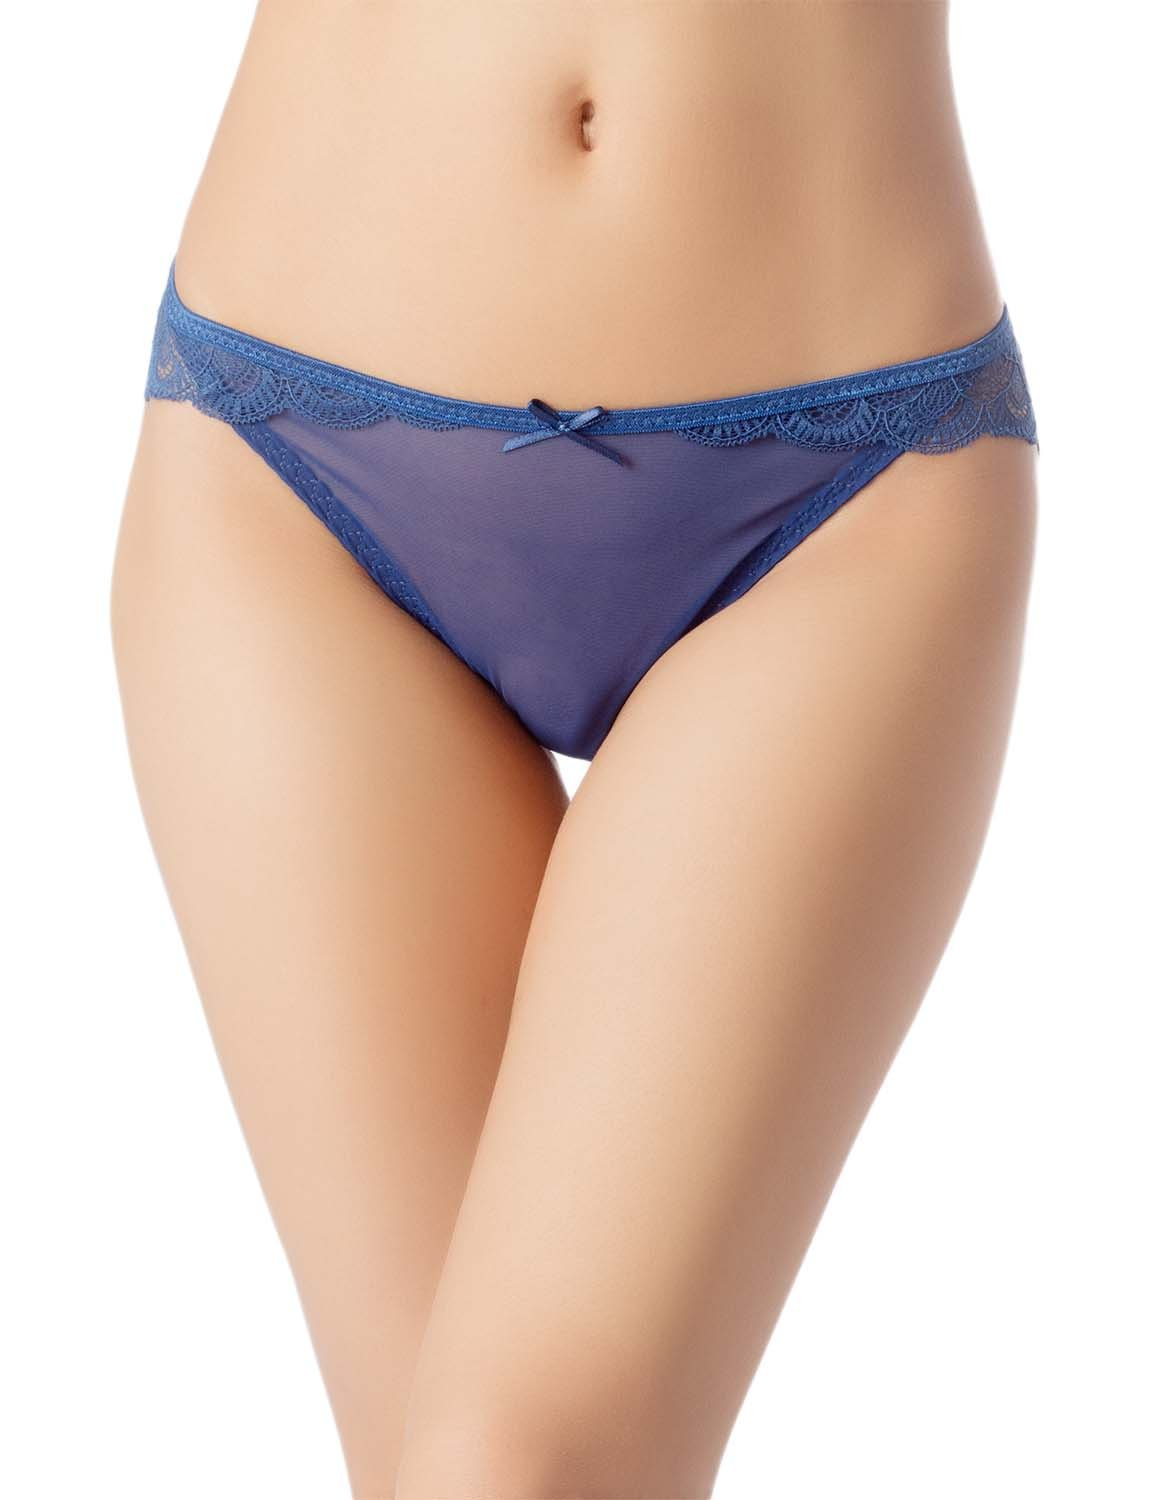 Women's Cotton Layered Lace Wings Trimmed See-Through Low Rise Brief Panty, Size: L, Royal